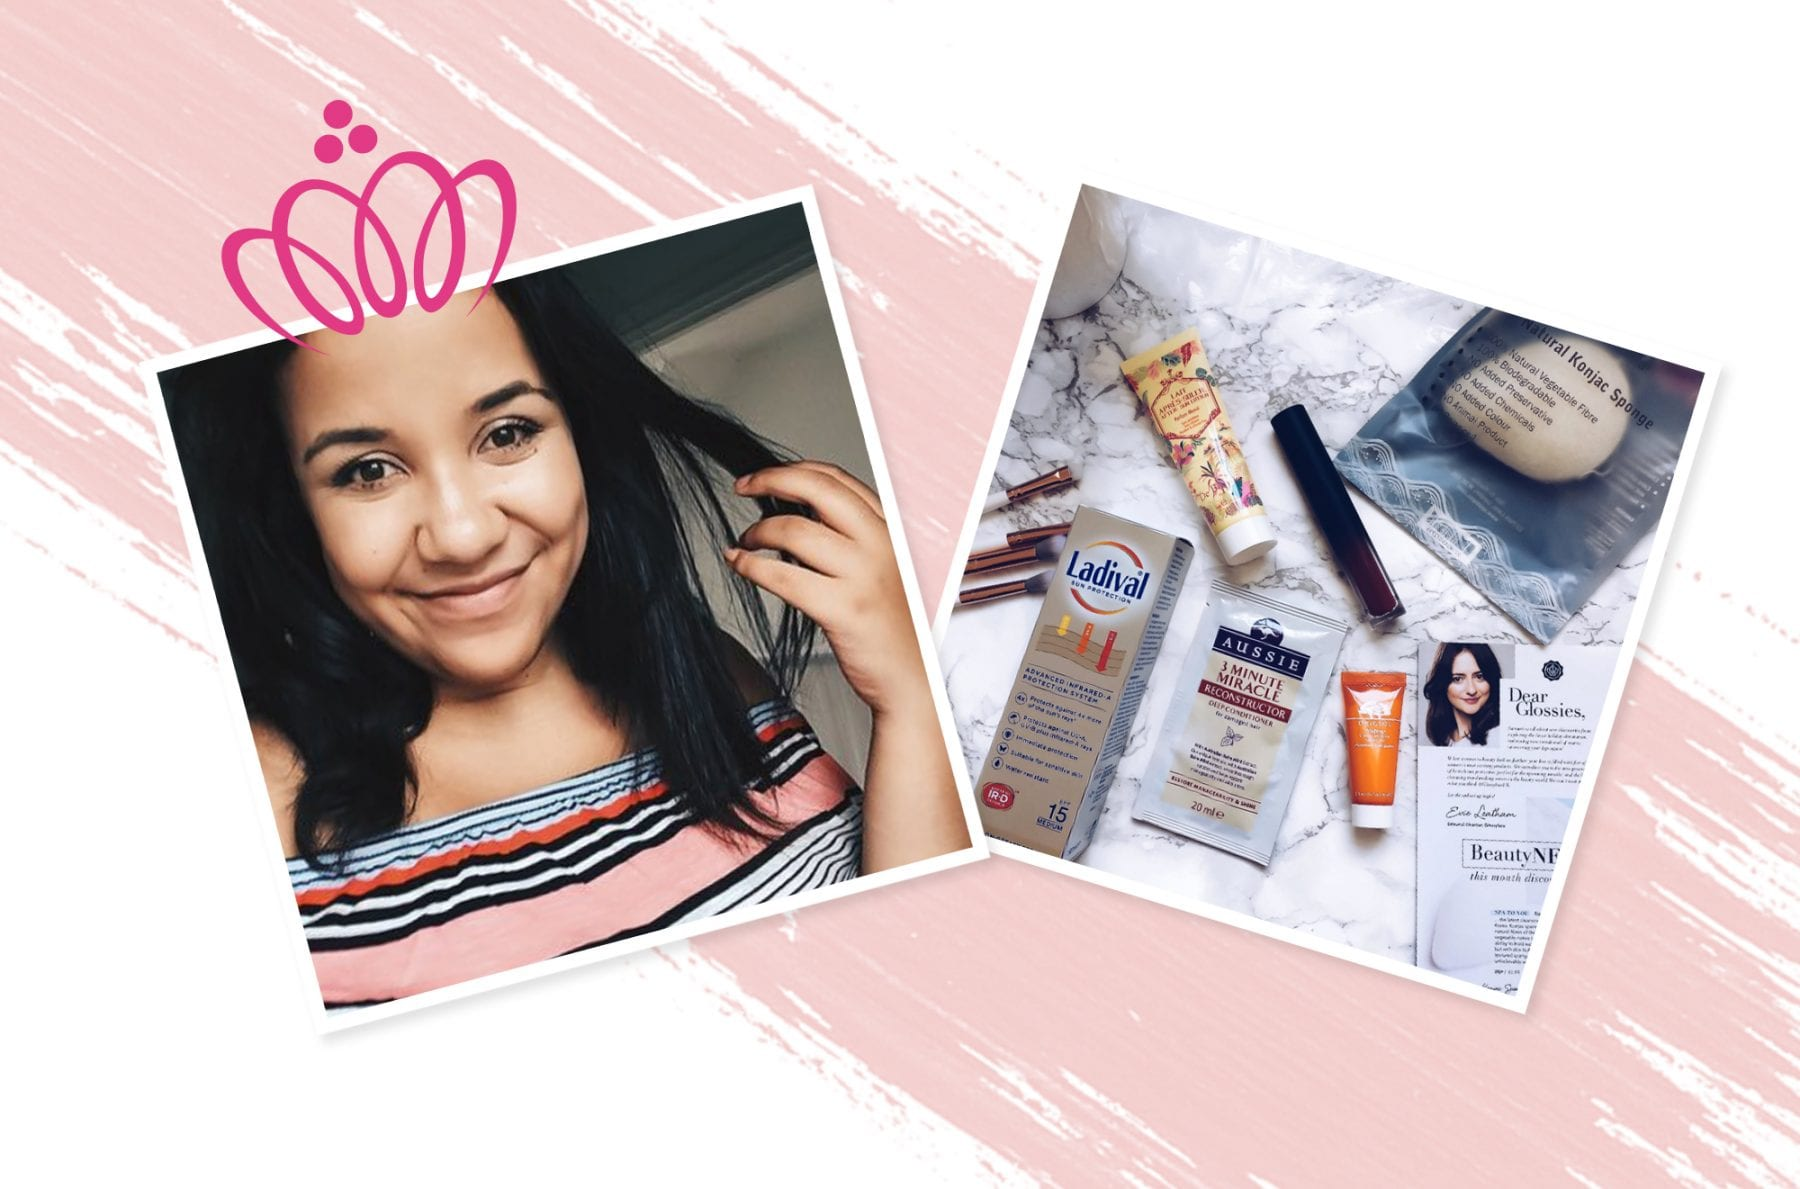 Introducing June's GLOSSYBOX GLAMBASSADOR Winner